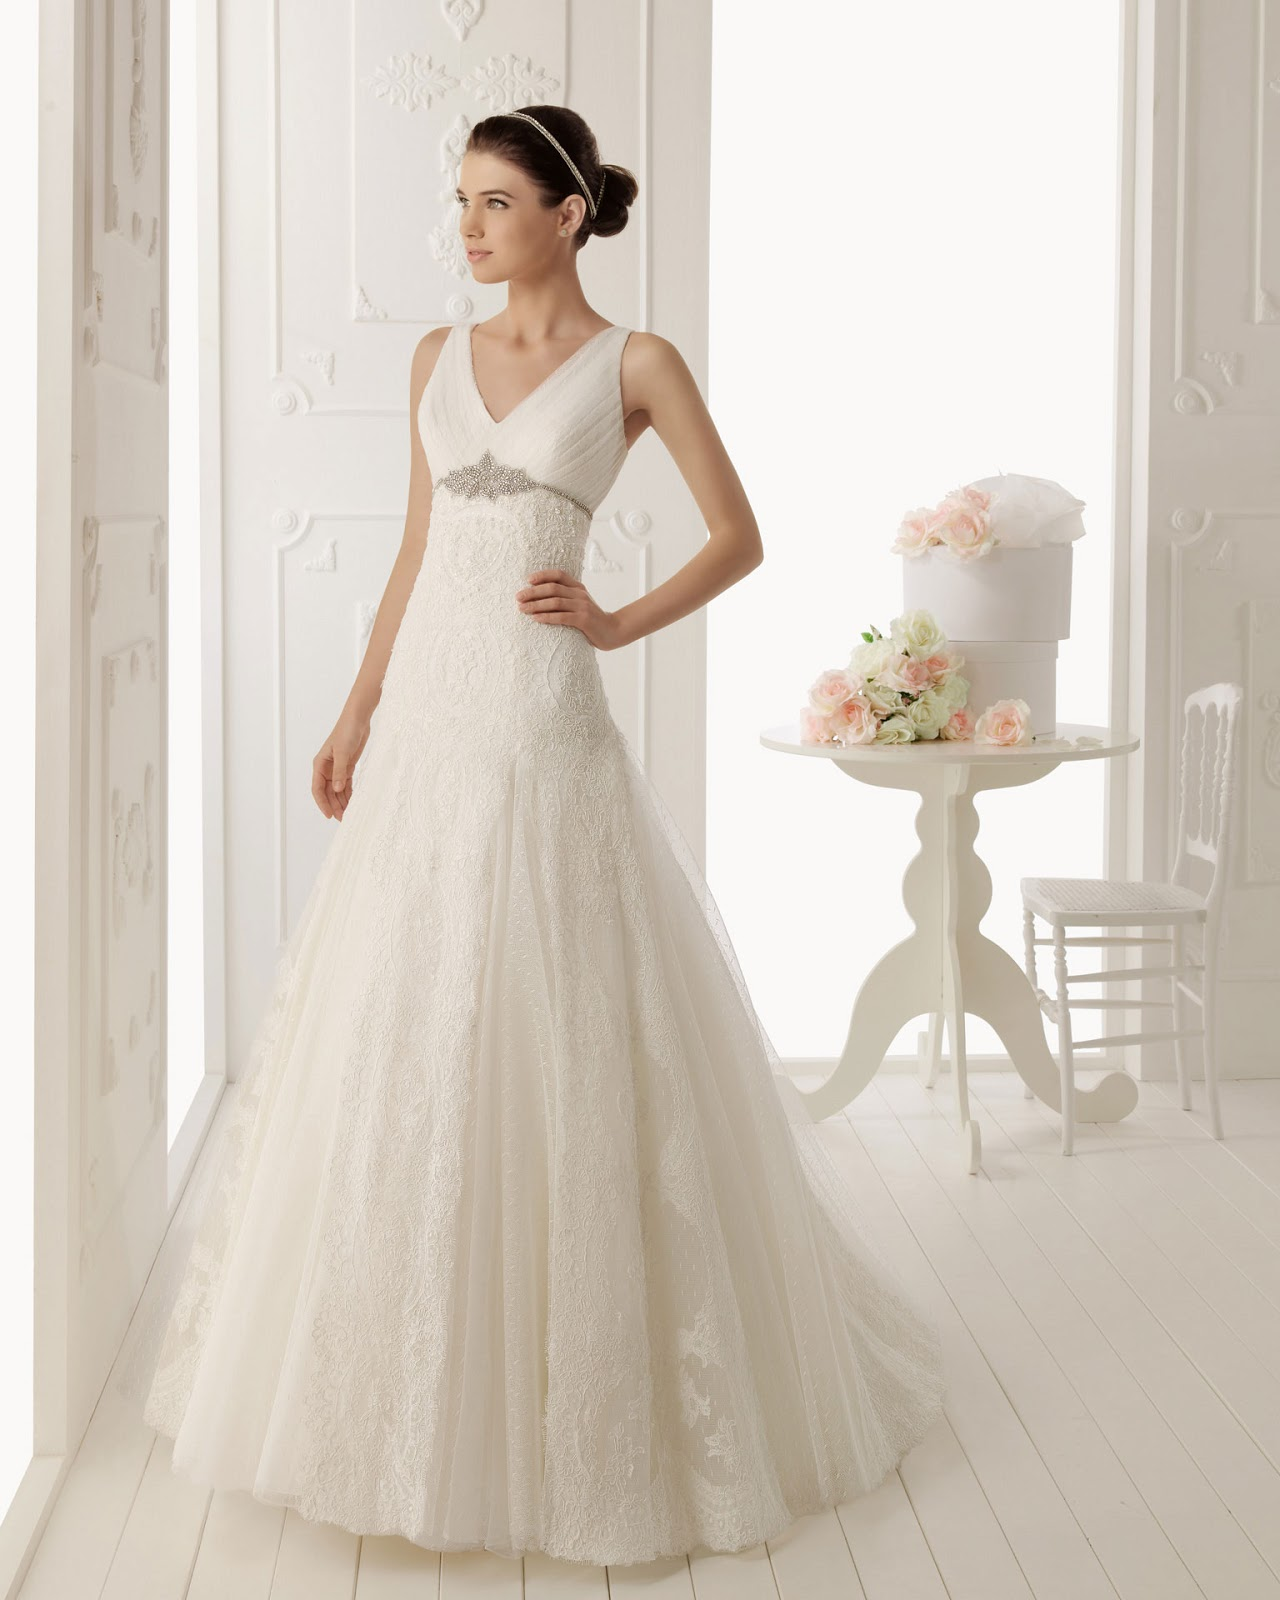 DressyBridal Princess Wedding Gowns——Start Your Fairy